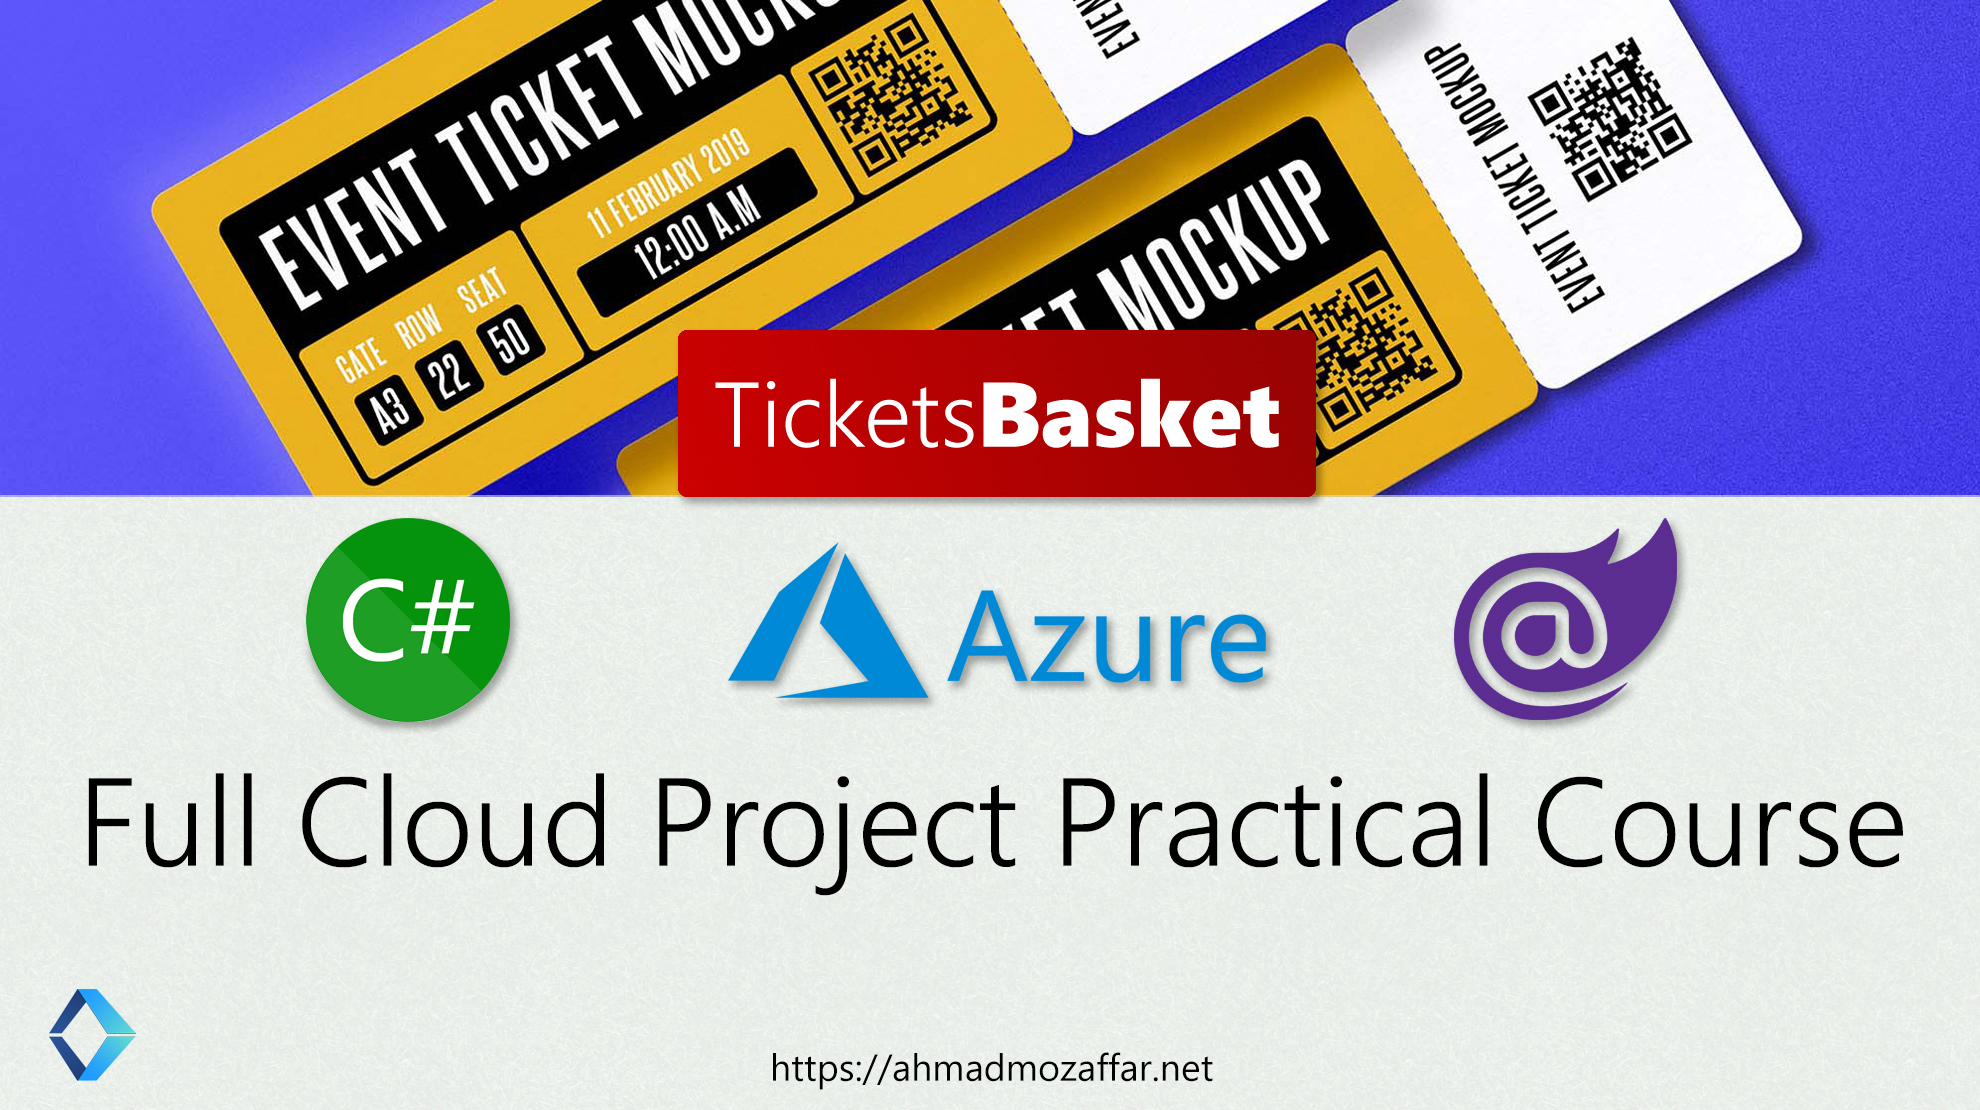 TicketsBasket | Full Cloud Project Practical Course with Azure and .NET Core